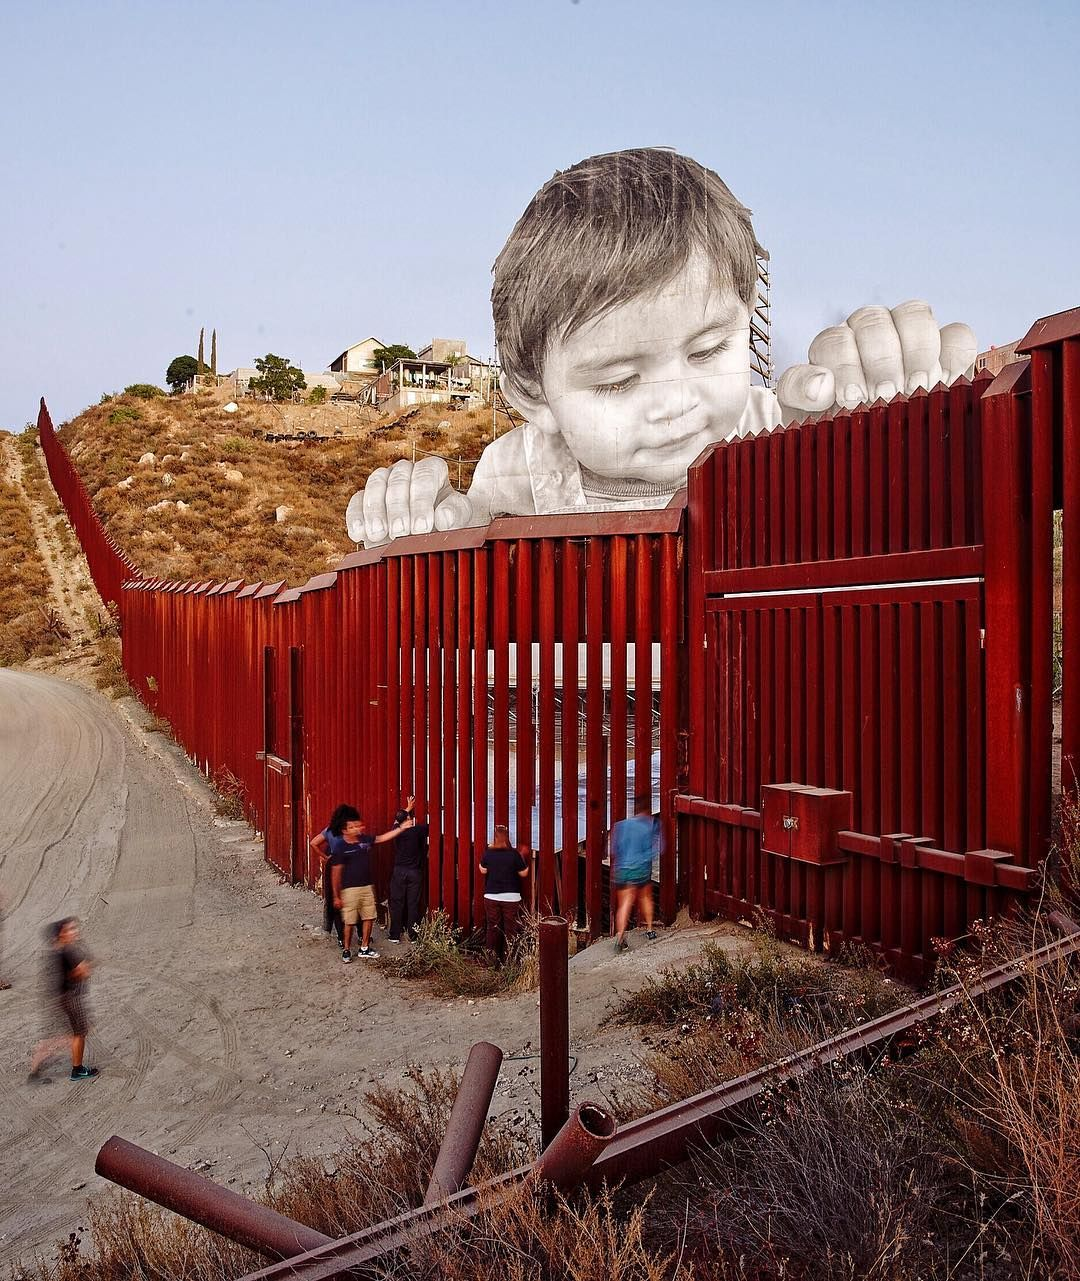 JR installed massive face of a child on mexican side of US